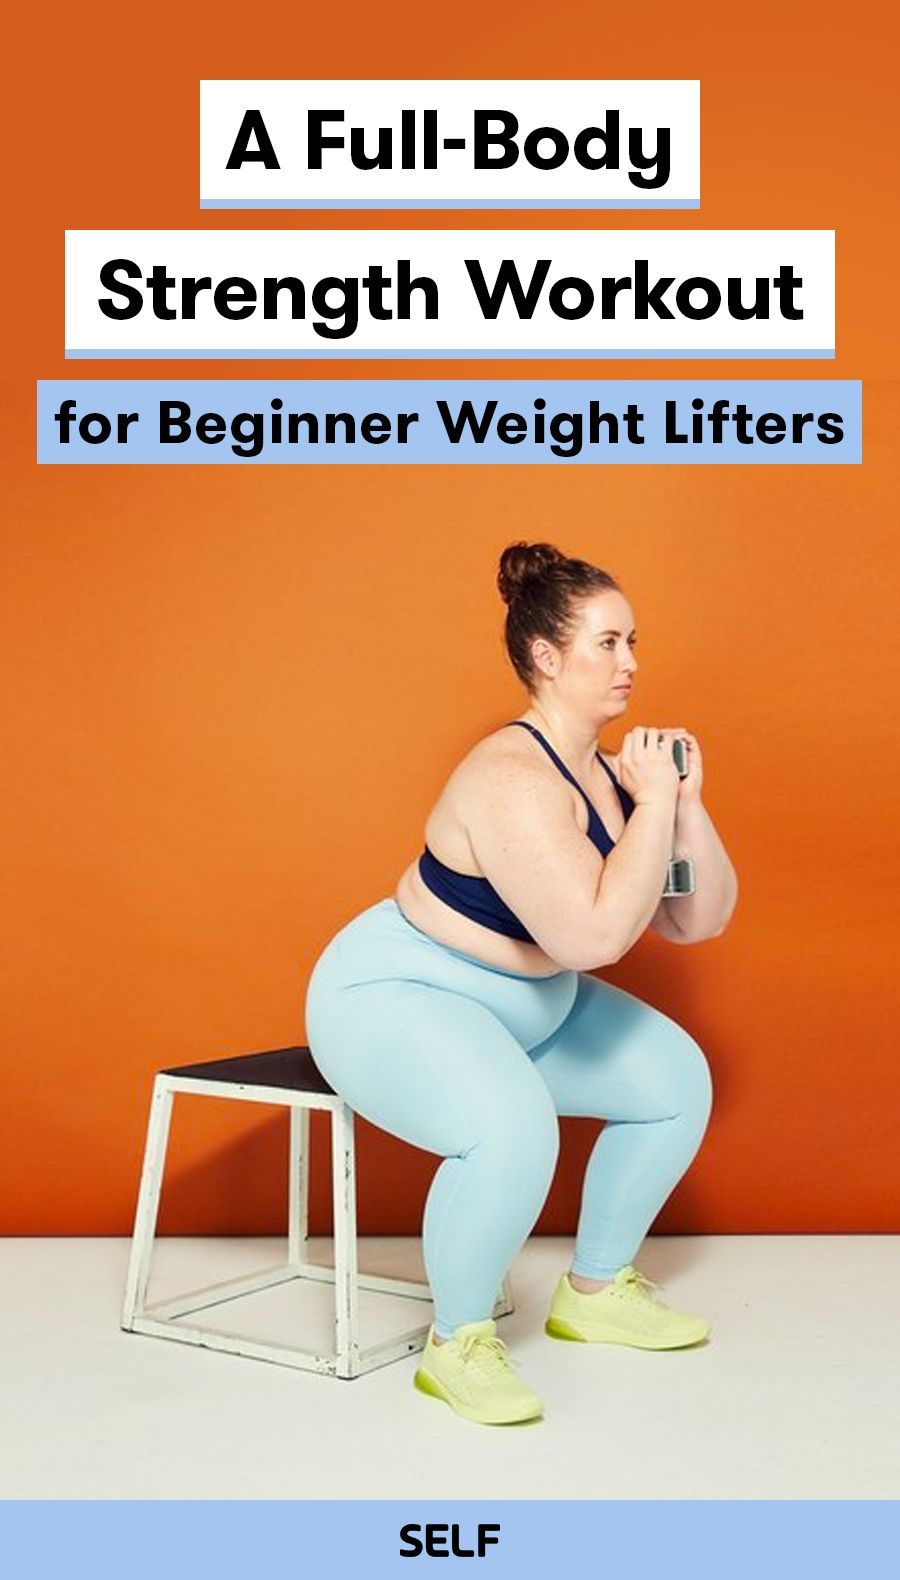 A Full-Body Strength Workout for Beginner Weight Lifters